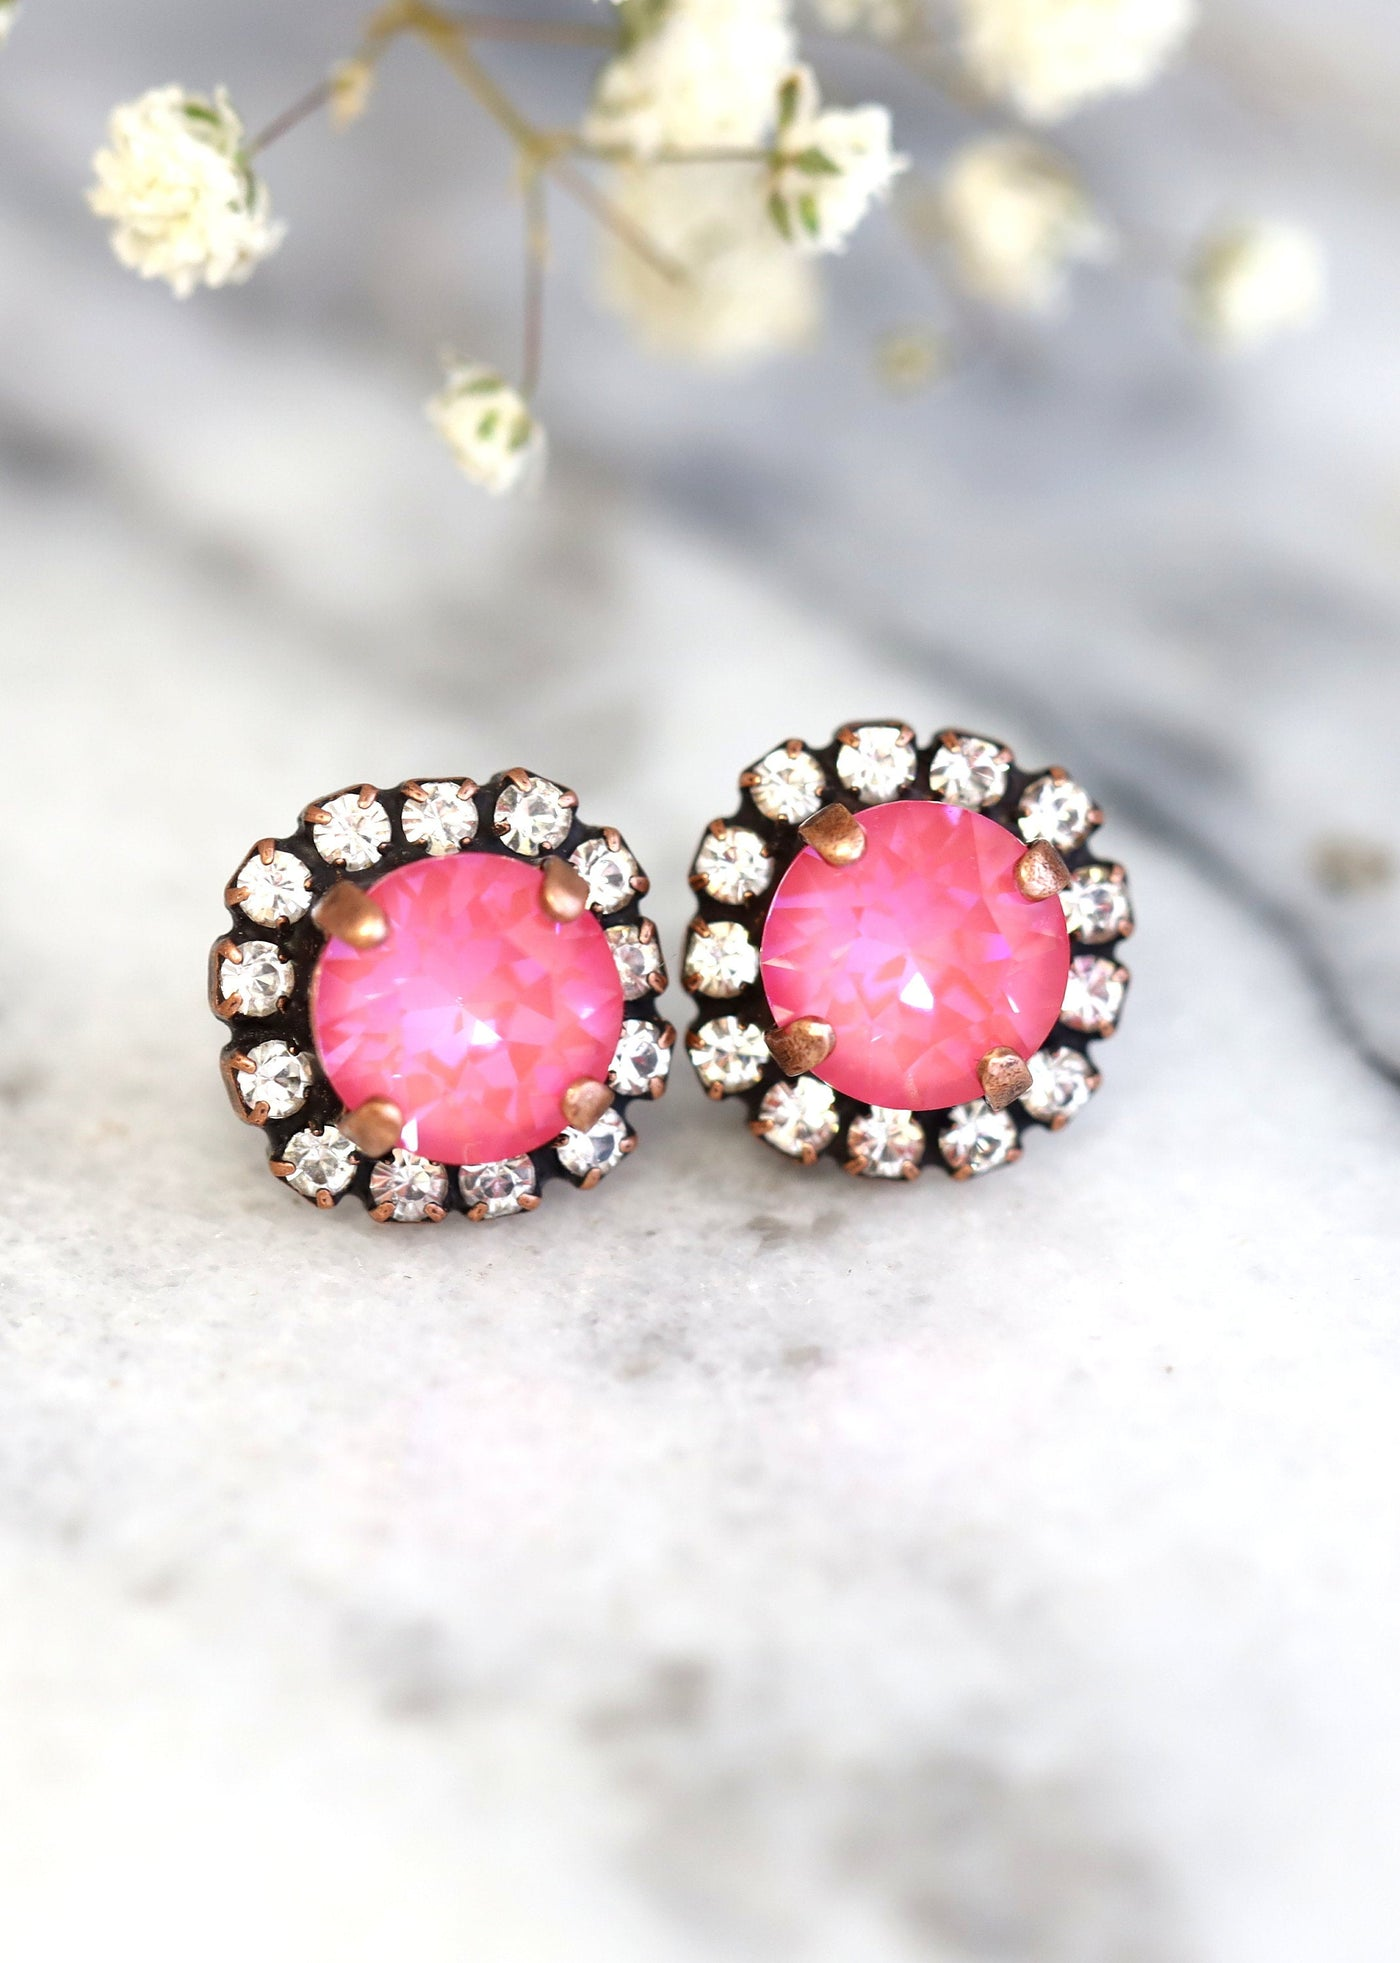 Jenny Hot Pink Crystal Swarovski Stud Earrings